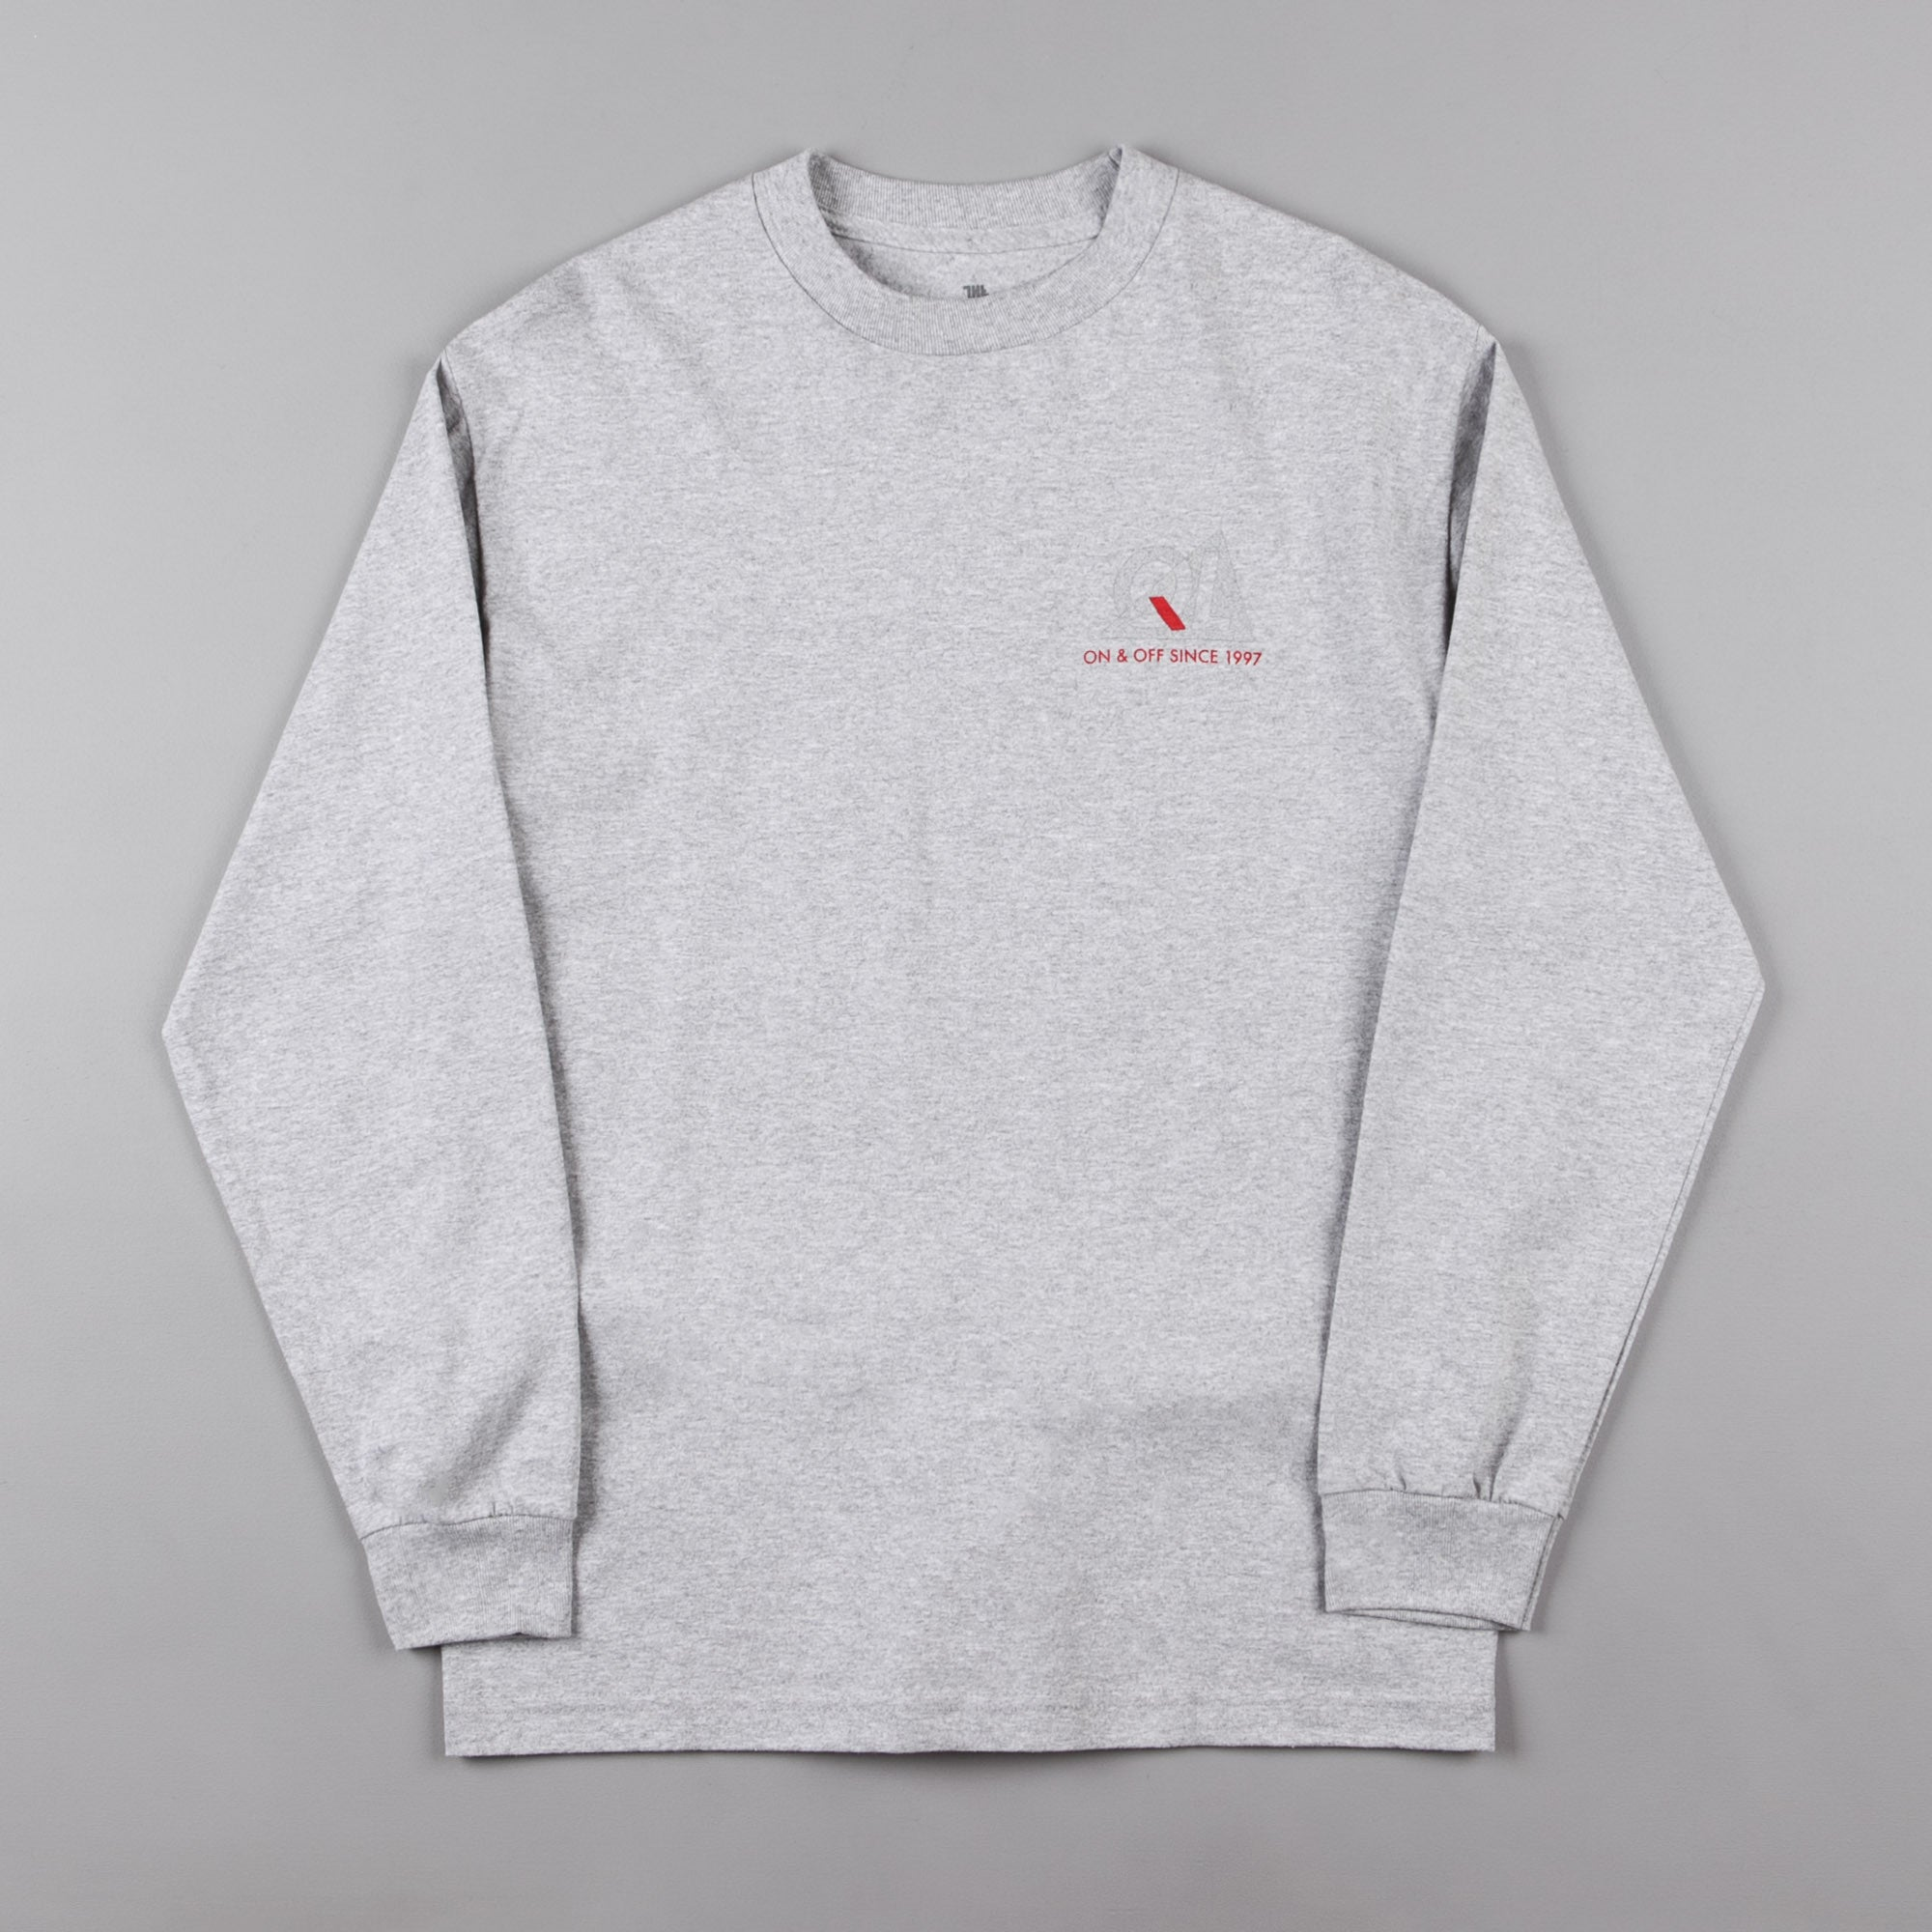 The Quiet Life Reflective Long Sleeve T-Shirt - Heather Grey